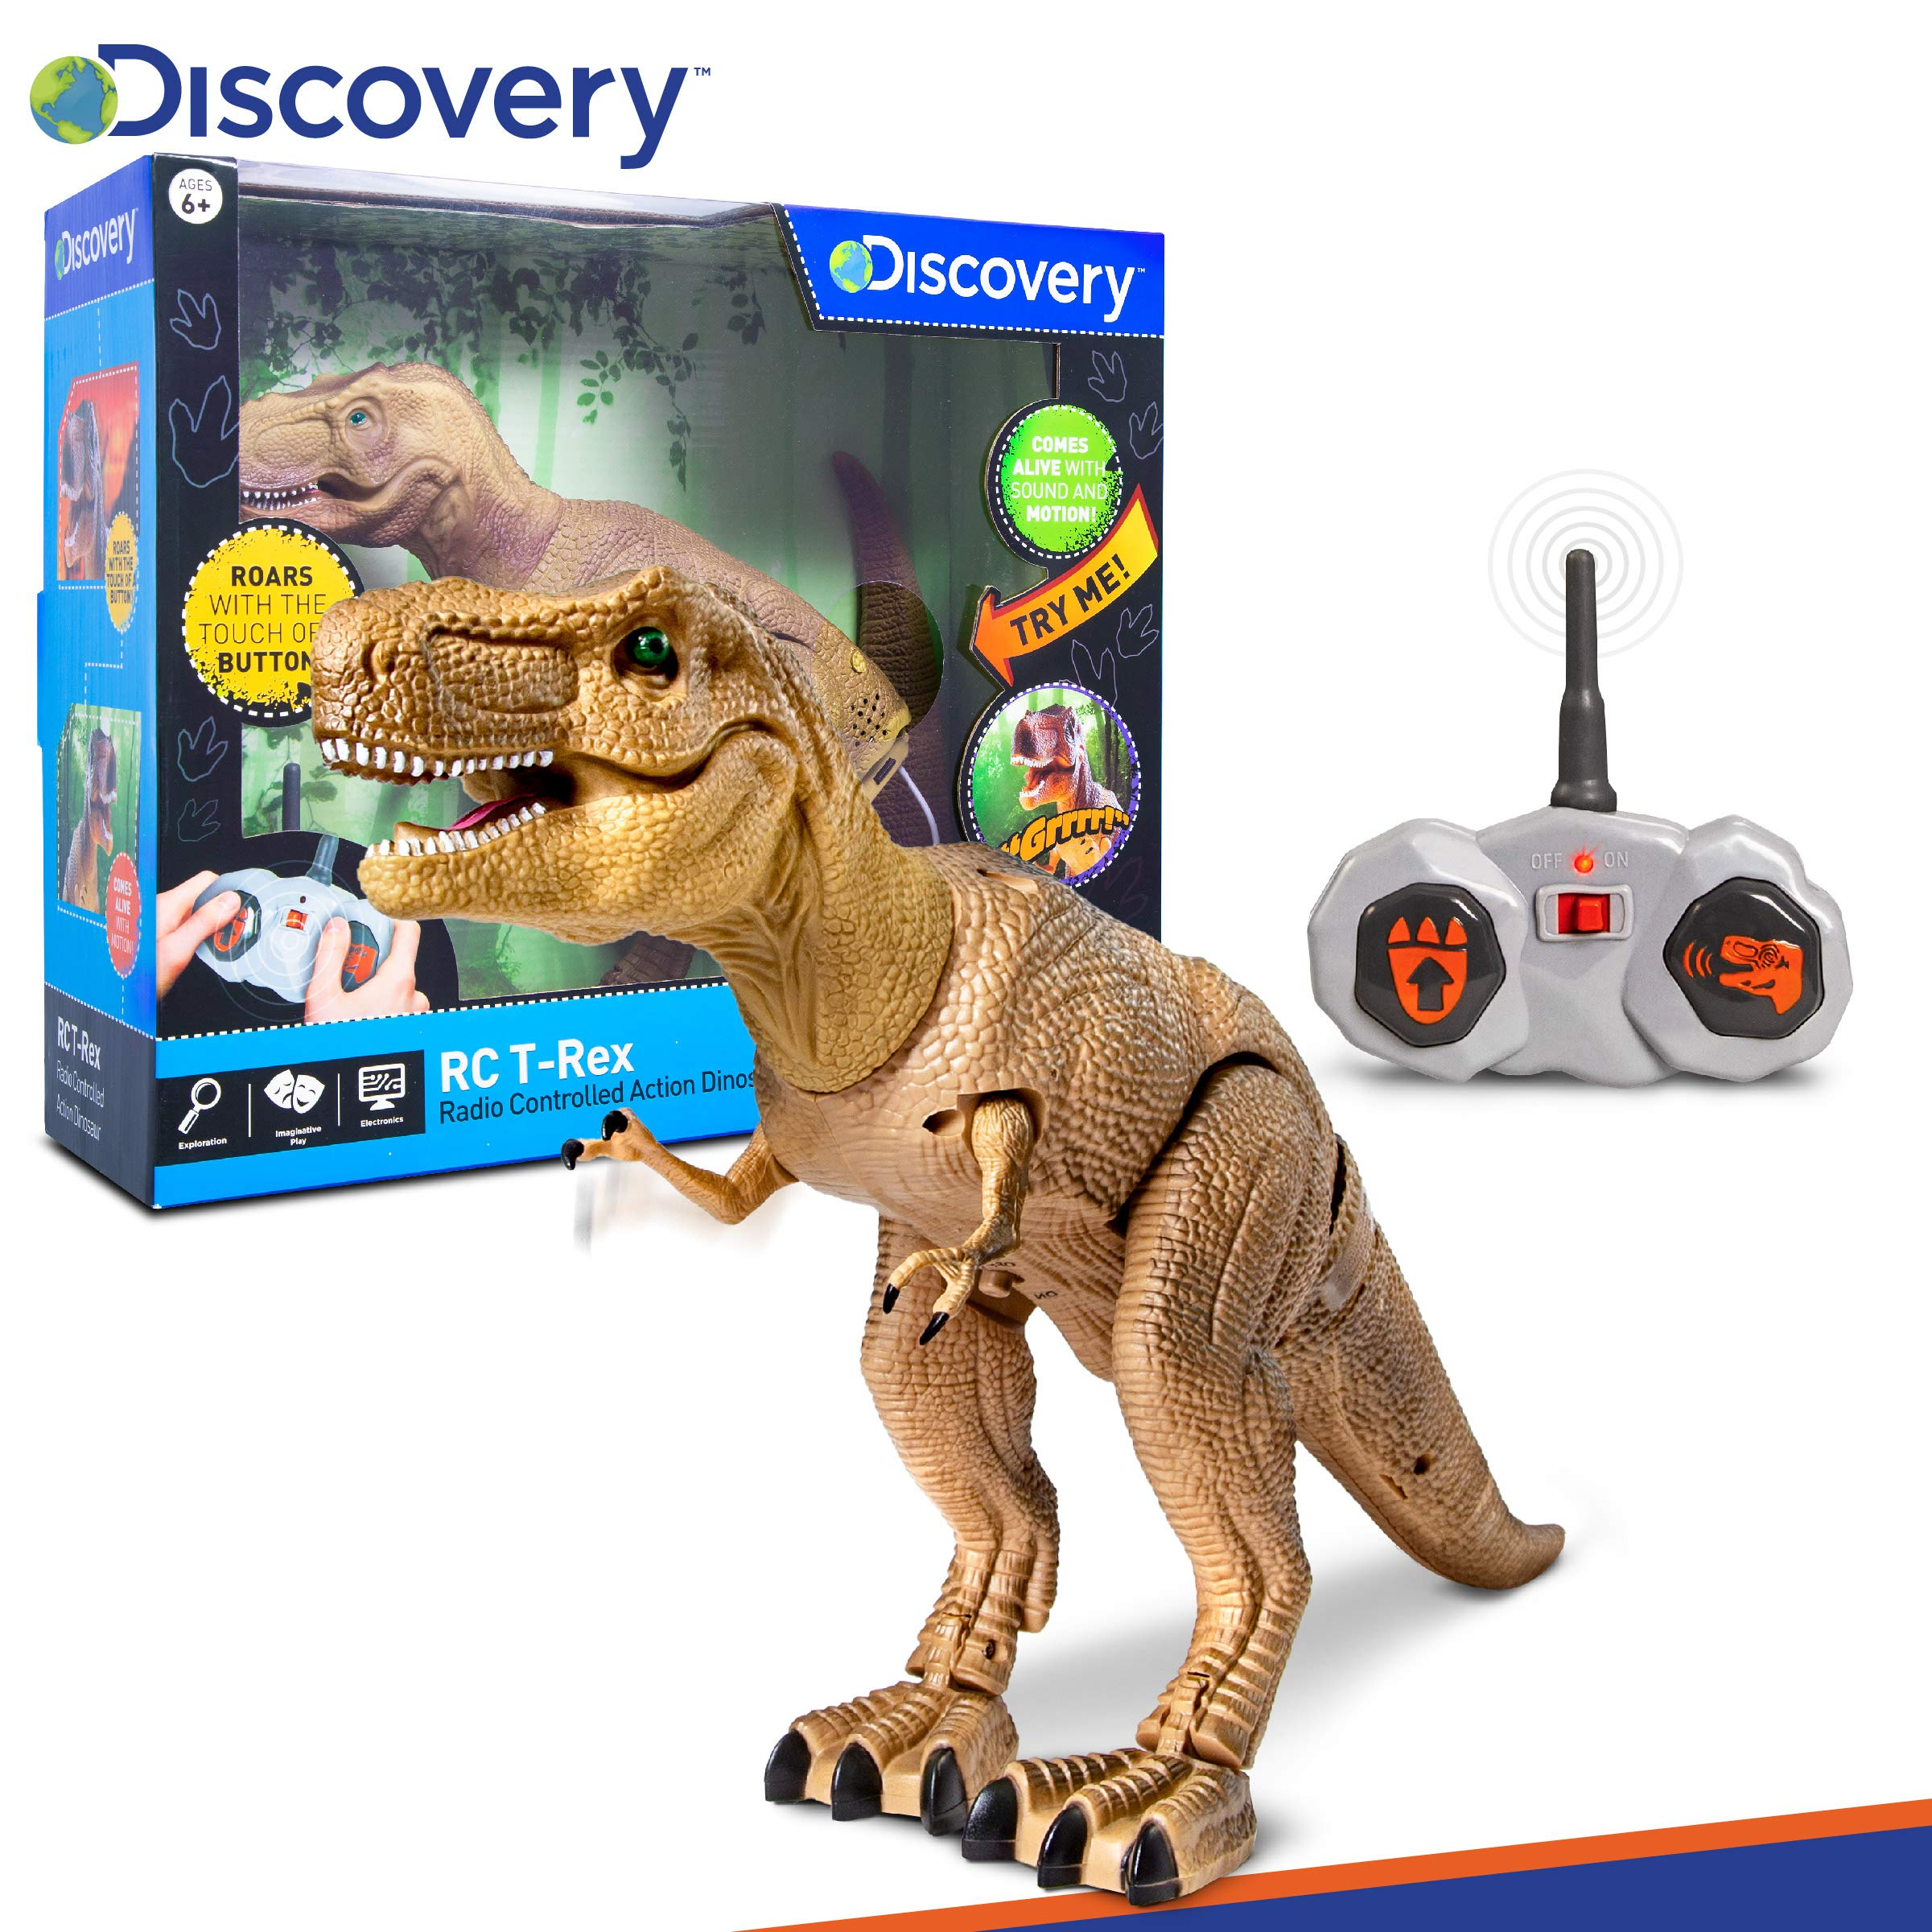 Discovery Kids Remote Control RC T Rex Dinosaur Electronic Toy Action Figure Moving & Walking Robot w/Roaring Sounds & Chomping Mouth, Realistic Plastic Model, Boys & Girls 6 Years Old+ by Discovery Kids (Image #8)